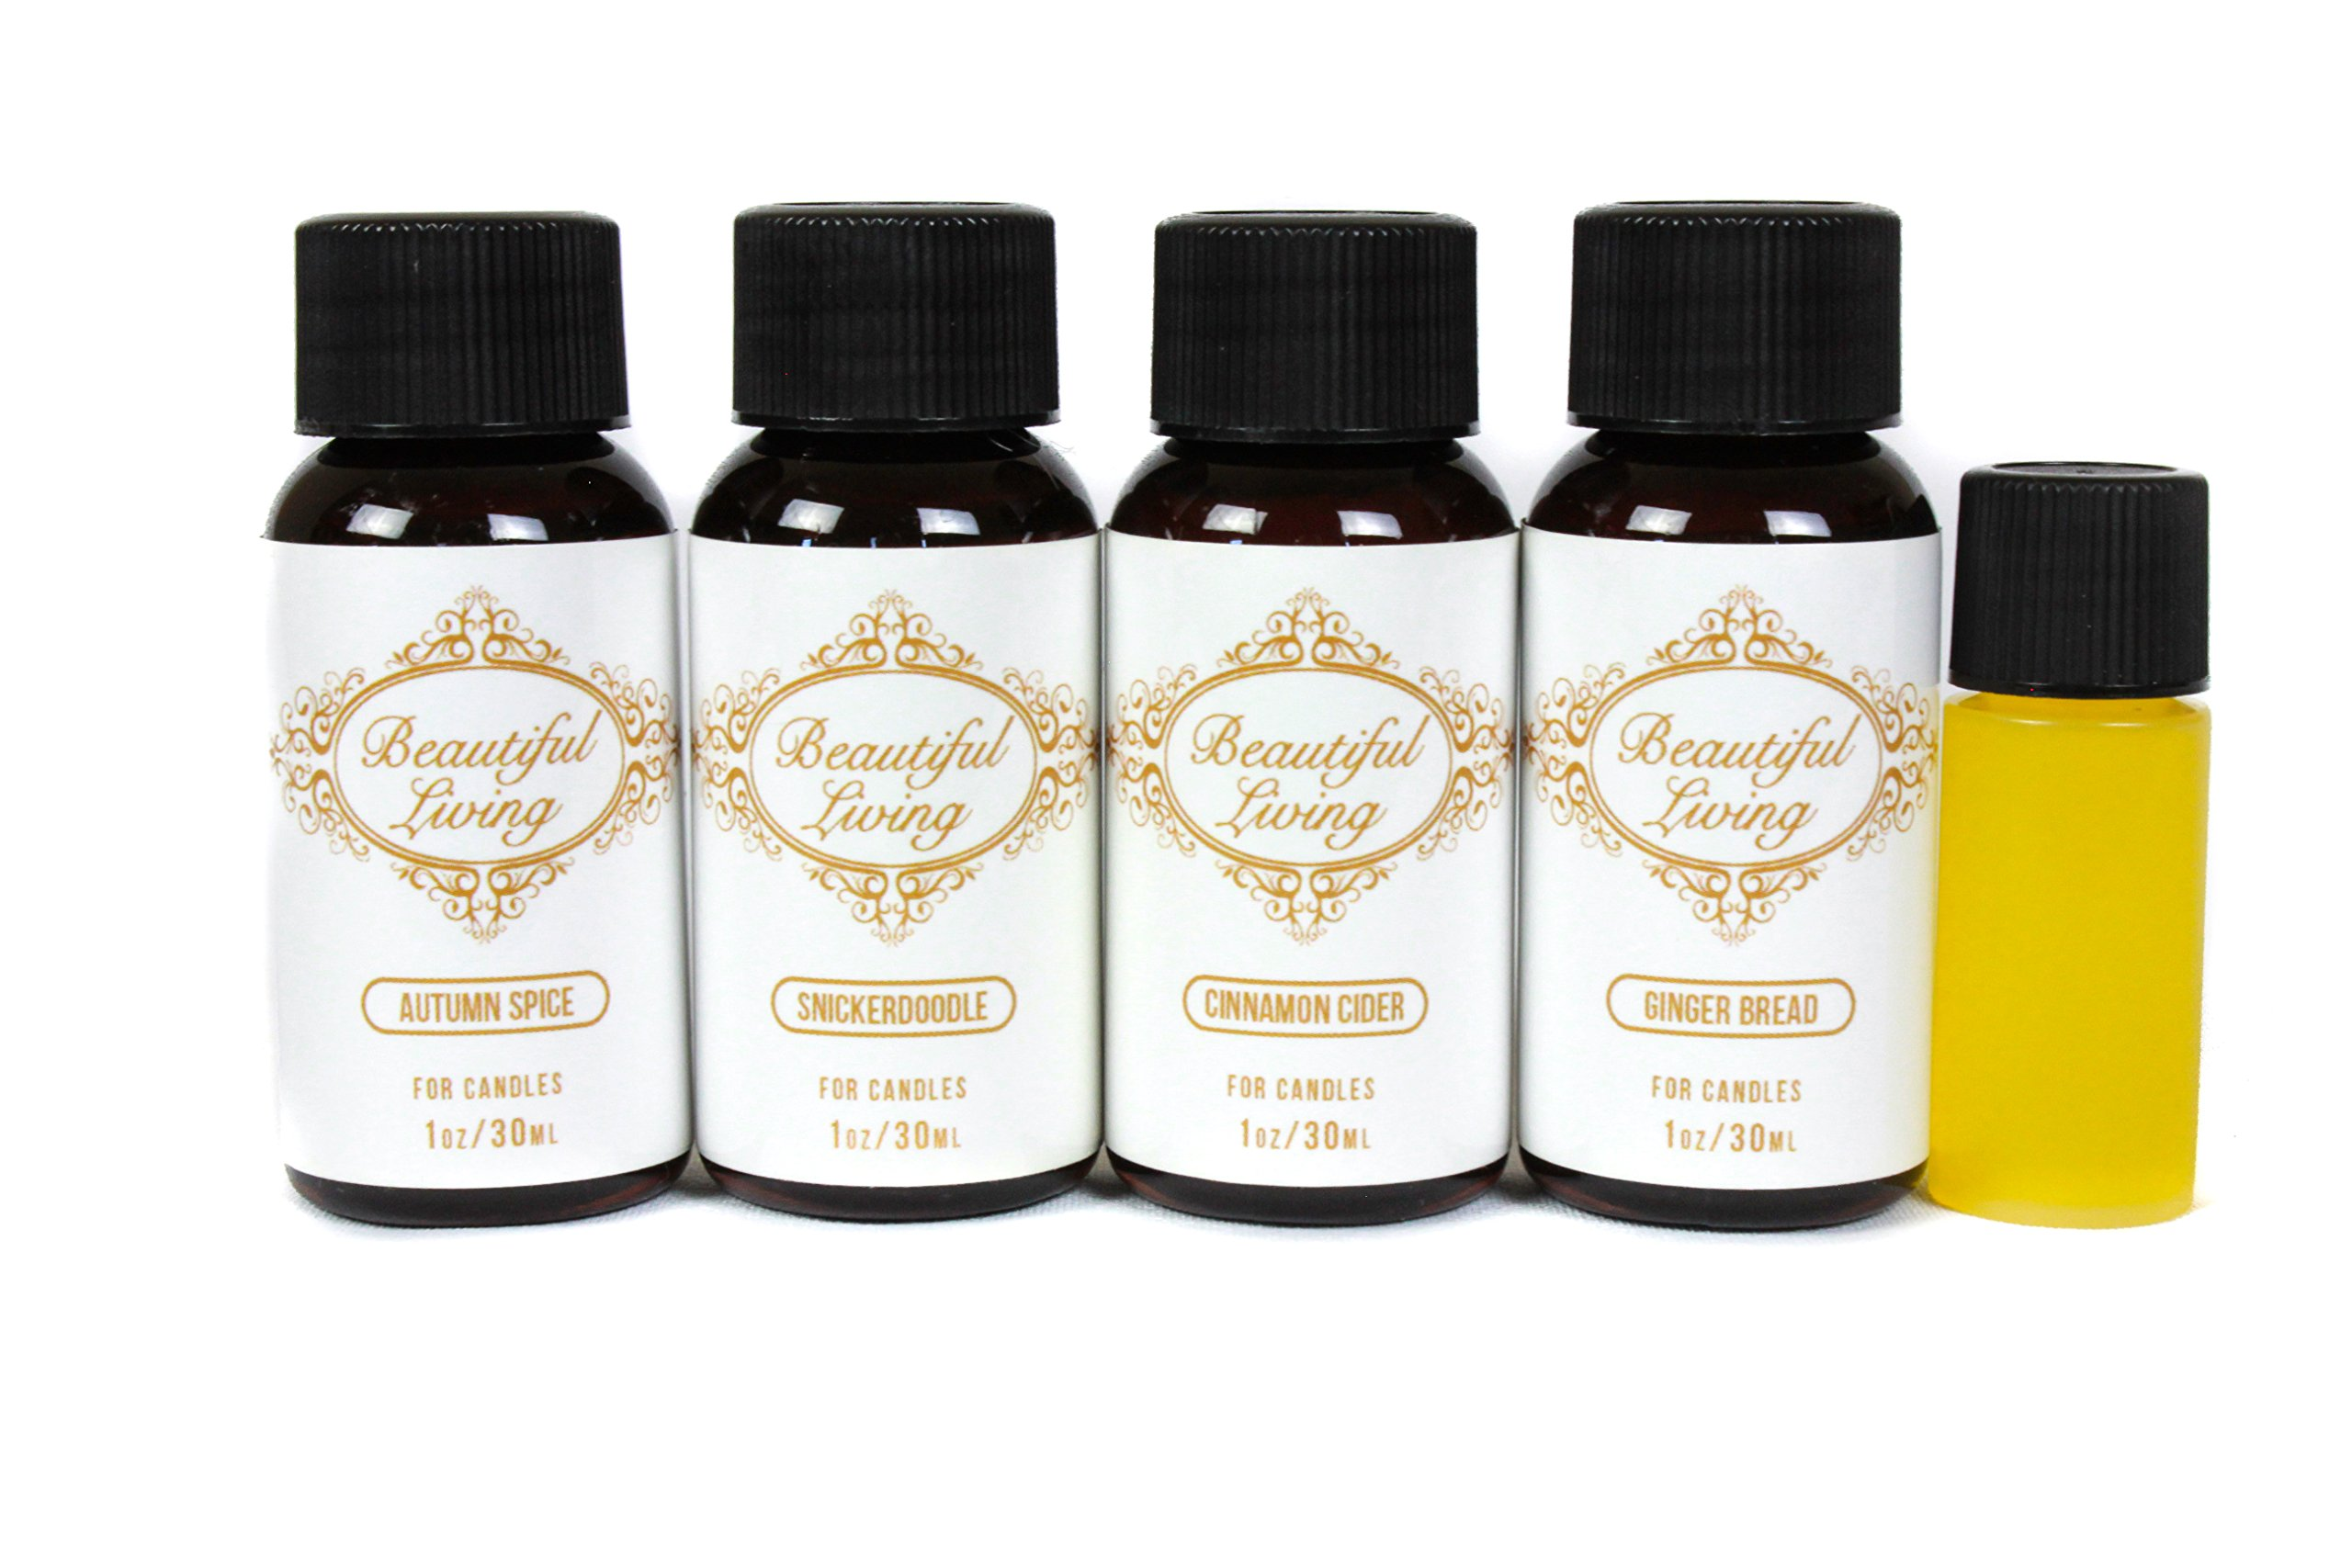 Fragrance Oil Sampler Set With Bonus Oil- Cinnamon Cider, Autumn Spice, Snickerdoodle, Gingerbread and Bonus Oil Pumpkin Harvest- Scents For Candle Making- Works in Diffusers, Warmers